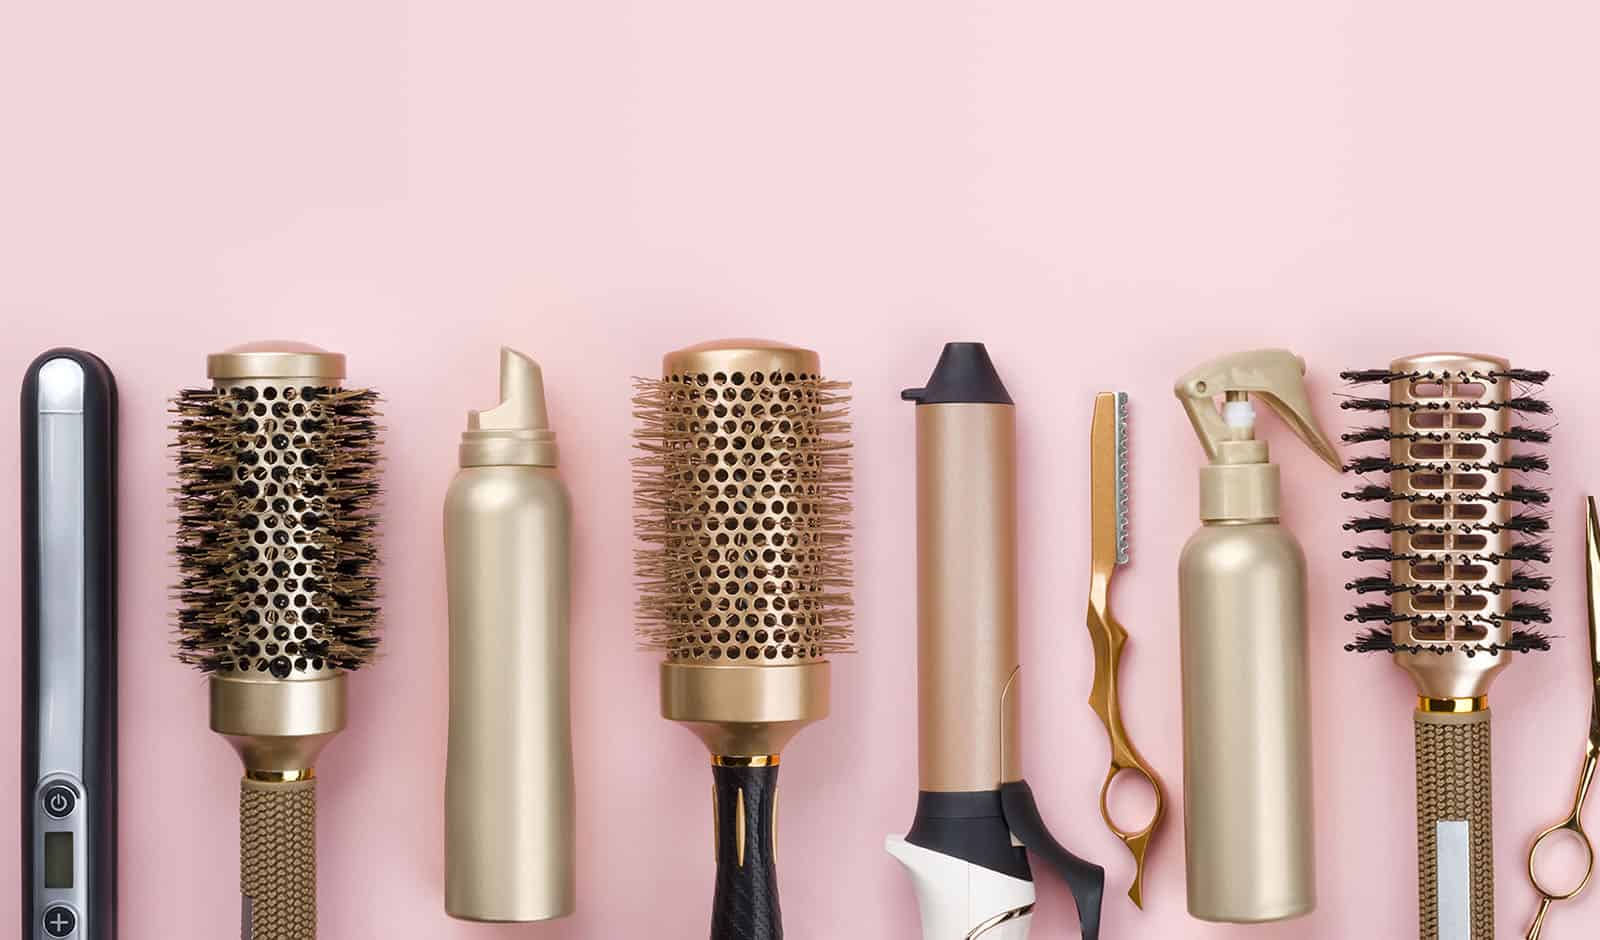 Professional hair dresser tools on pink background with copy spa